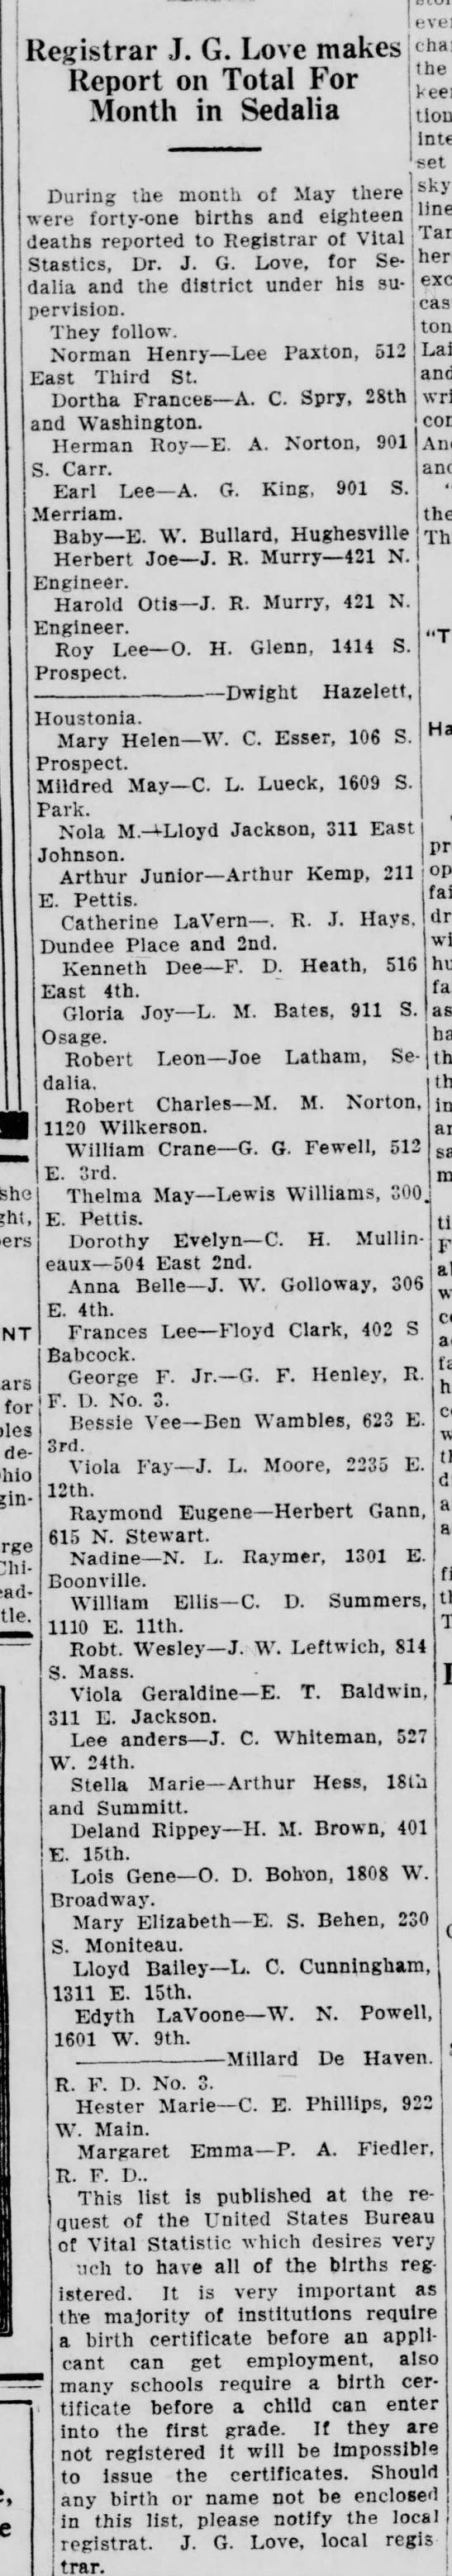 Birth Notice - William Crane Fewell - Report on Total For Month in Sedalia f'Vf...